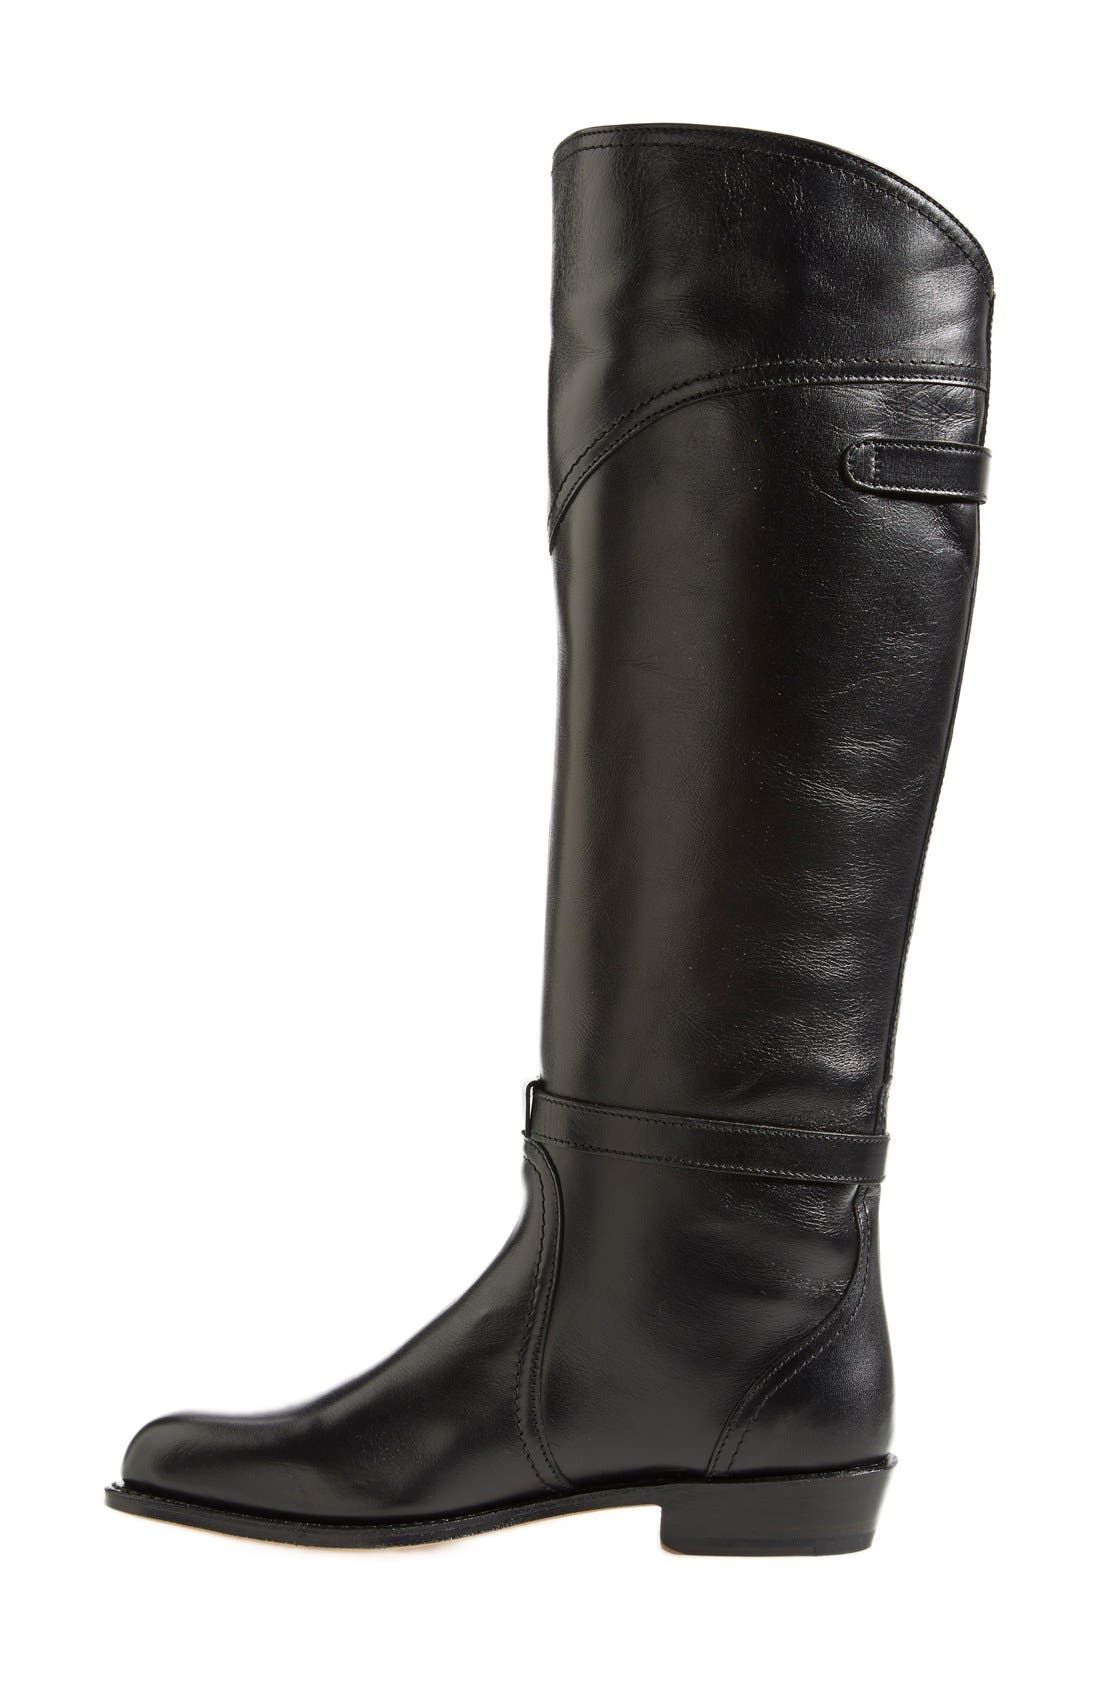 Alternate Image 2  - Frye 'Dorado' Leather Riding Boot